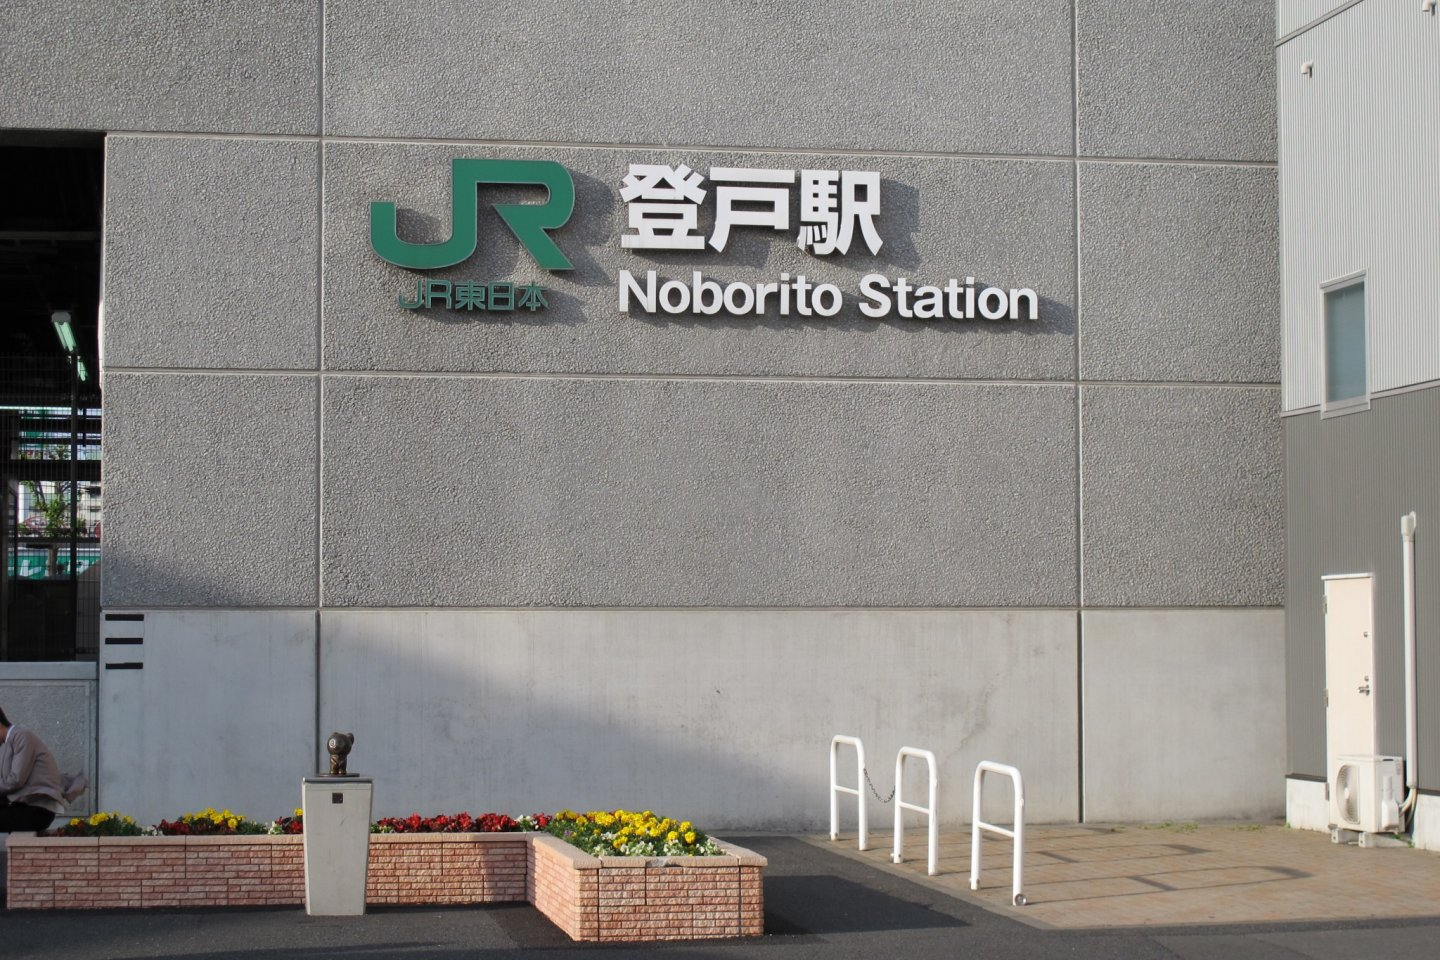 The station's entrance